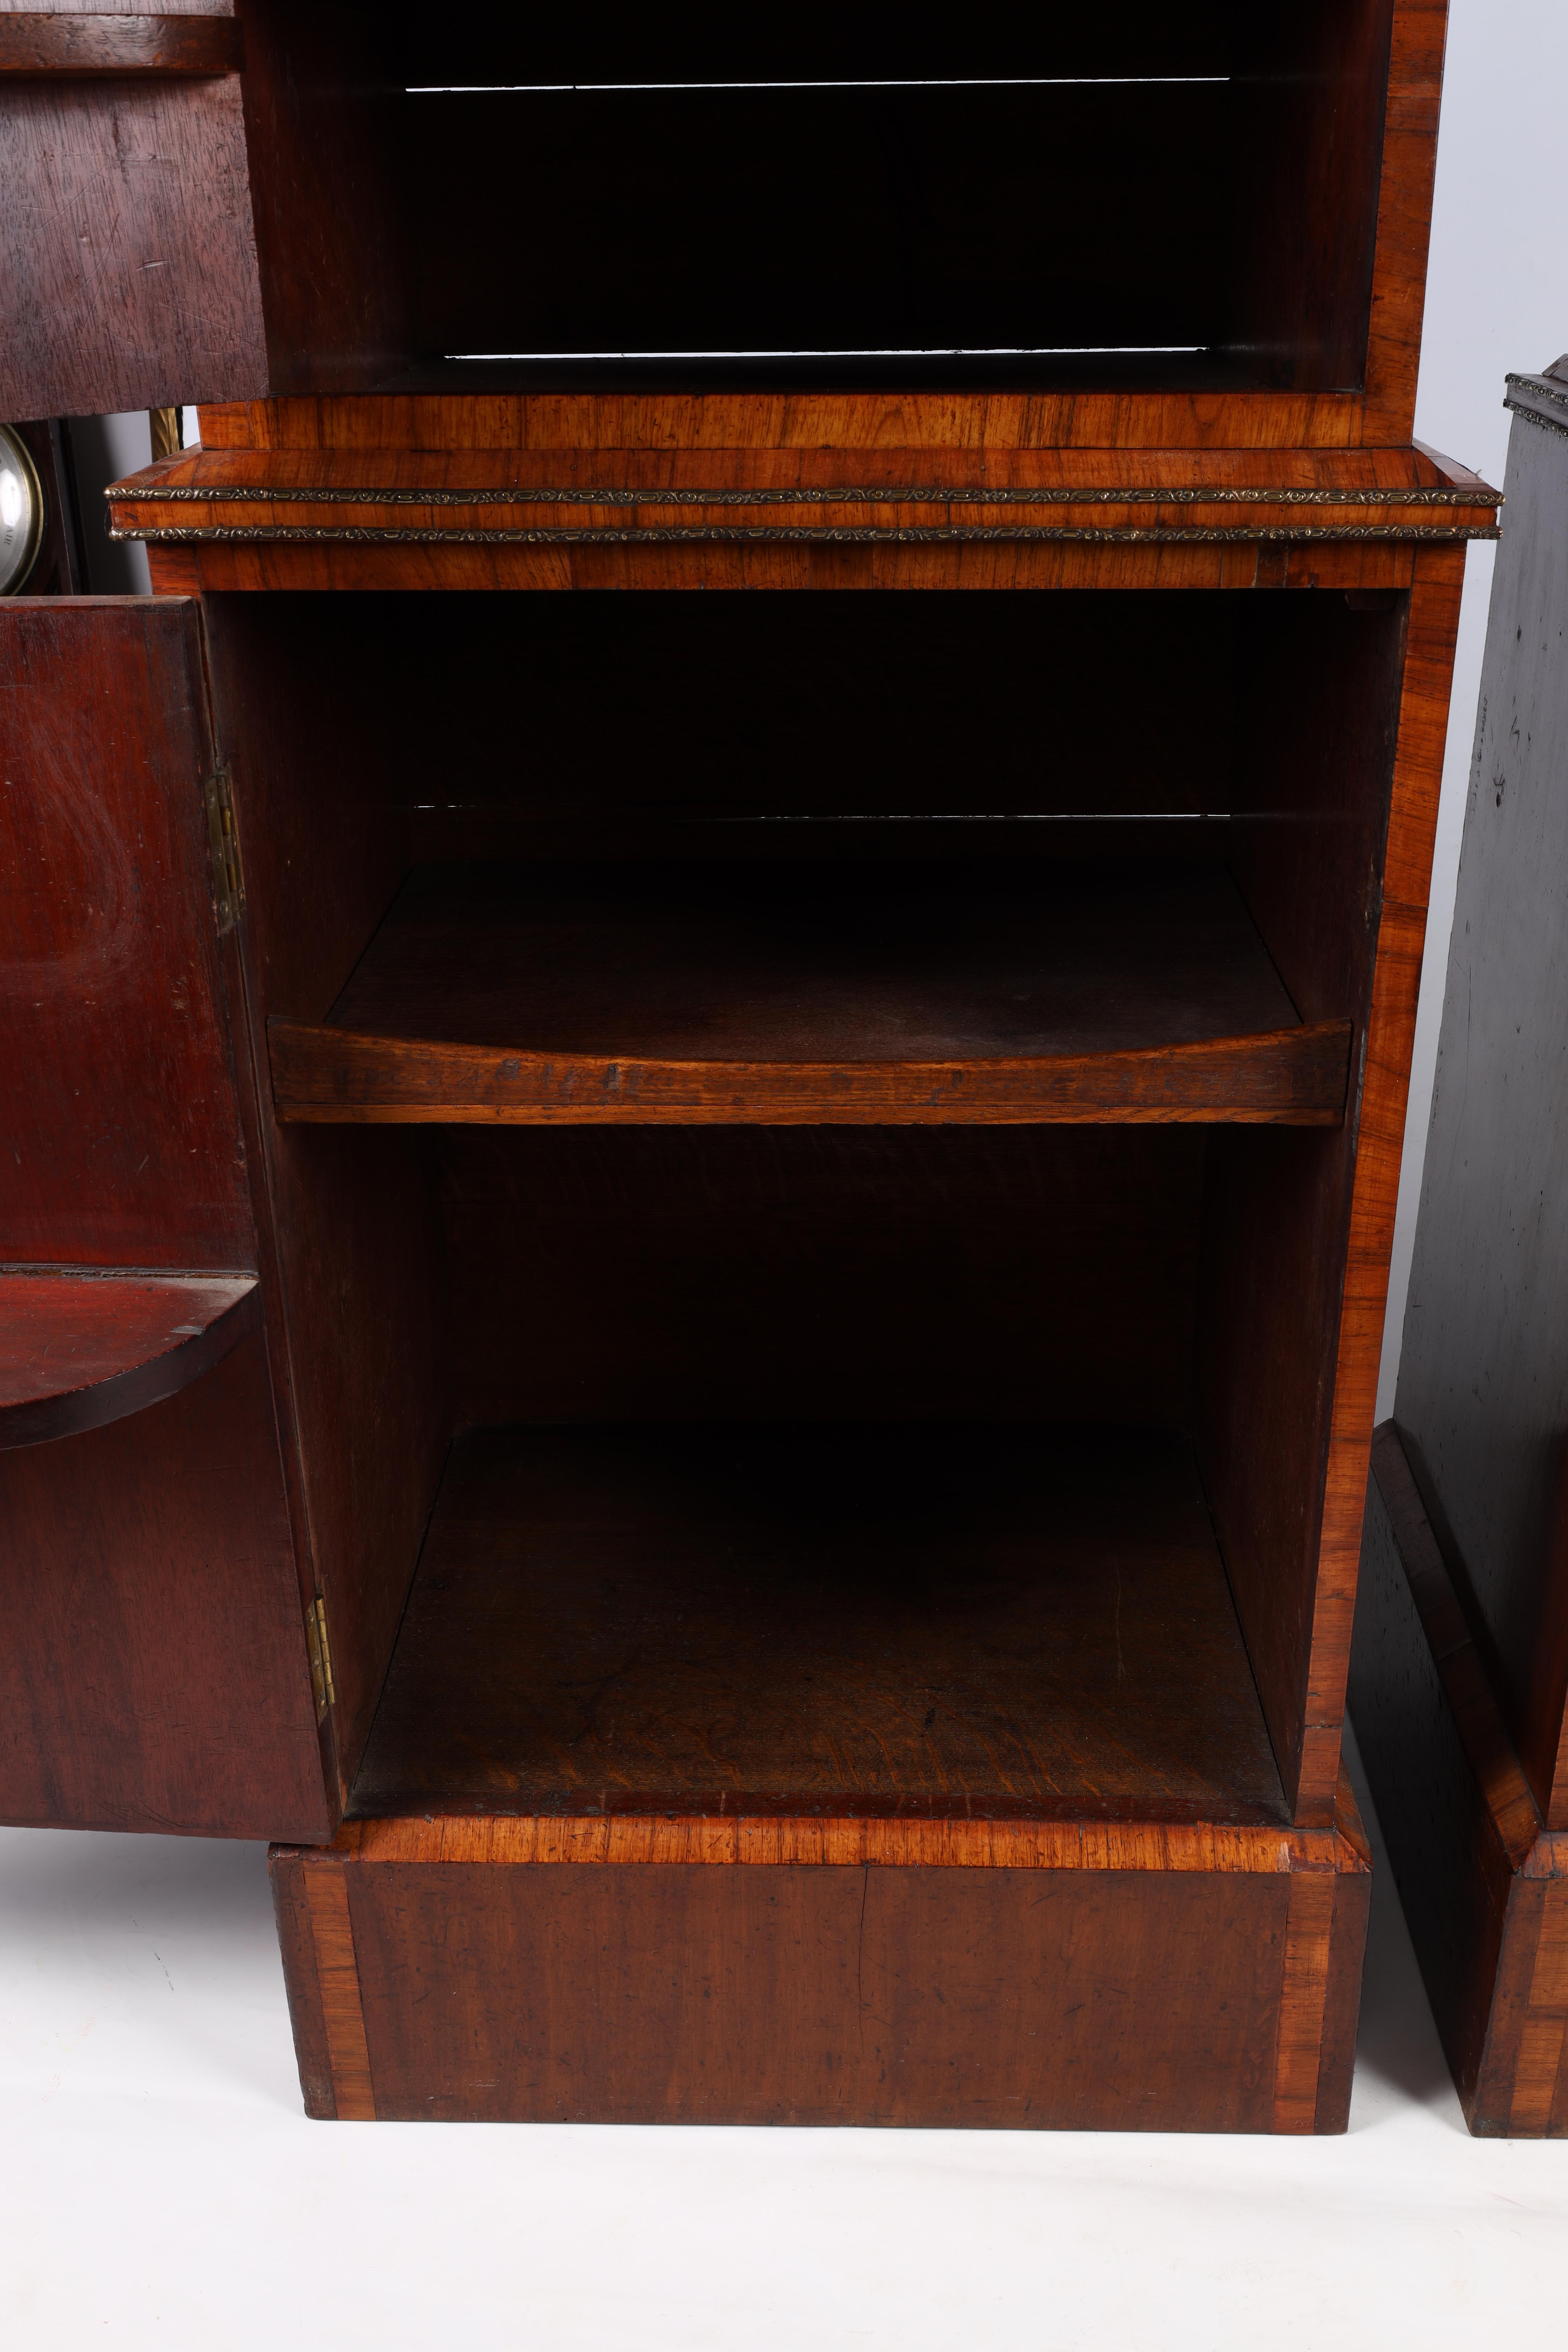 A LARGE PAIR OF GEORGE III KINGWOOD BANDED MAHOGANY PEDESTALS with unusual pen work panels depicting - Image 8 of 11